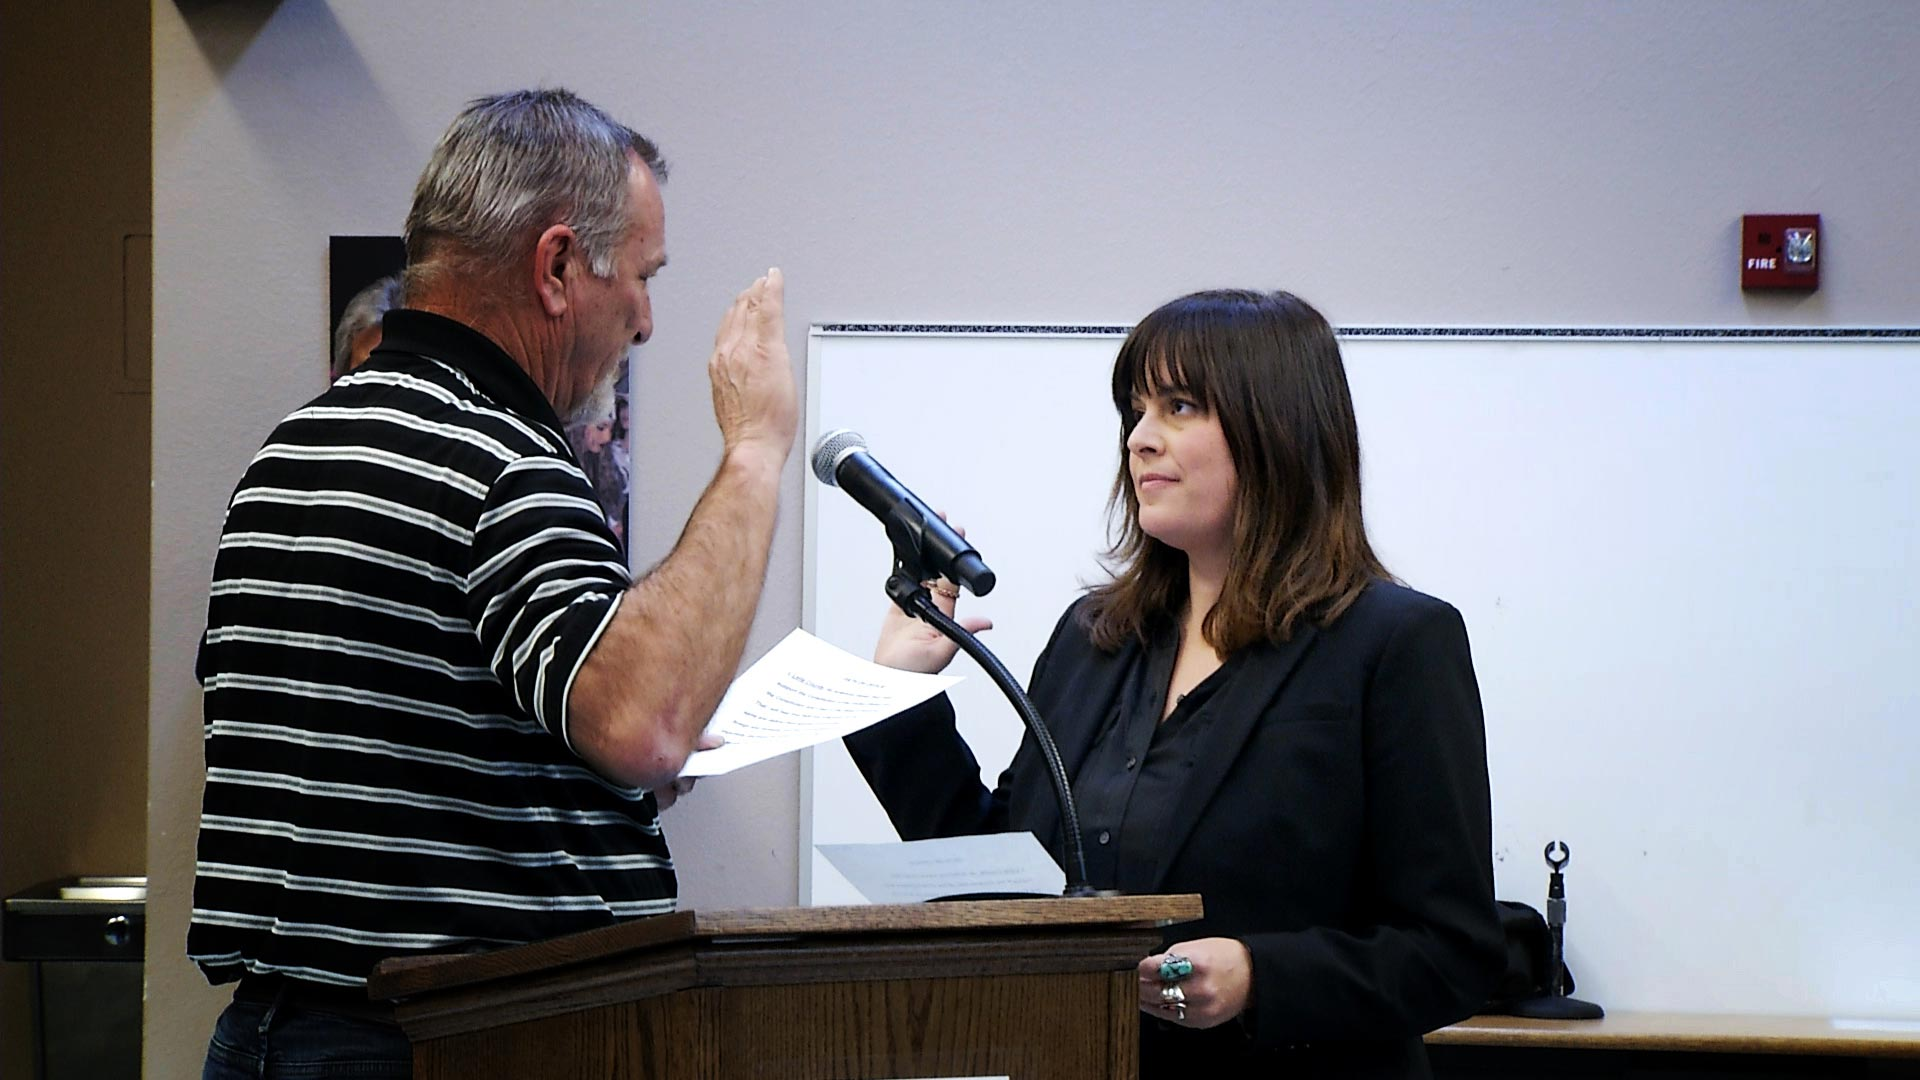 Leila Counts is sworn in as the newest board member of the Tucson Unified School District on January 8, 2019.